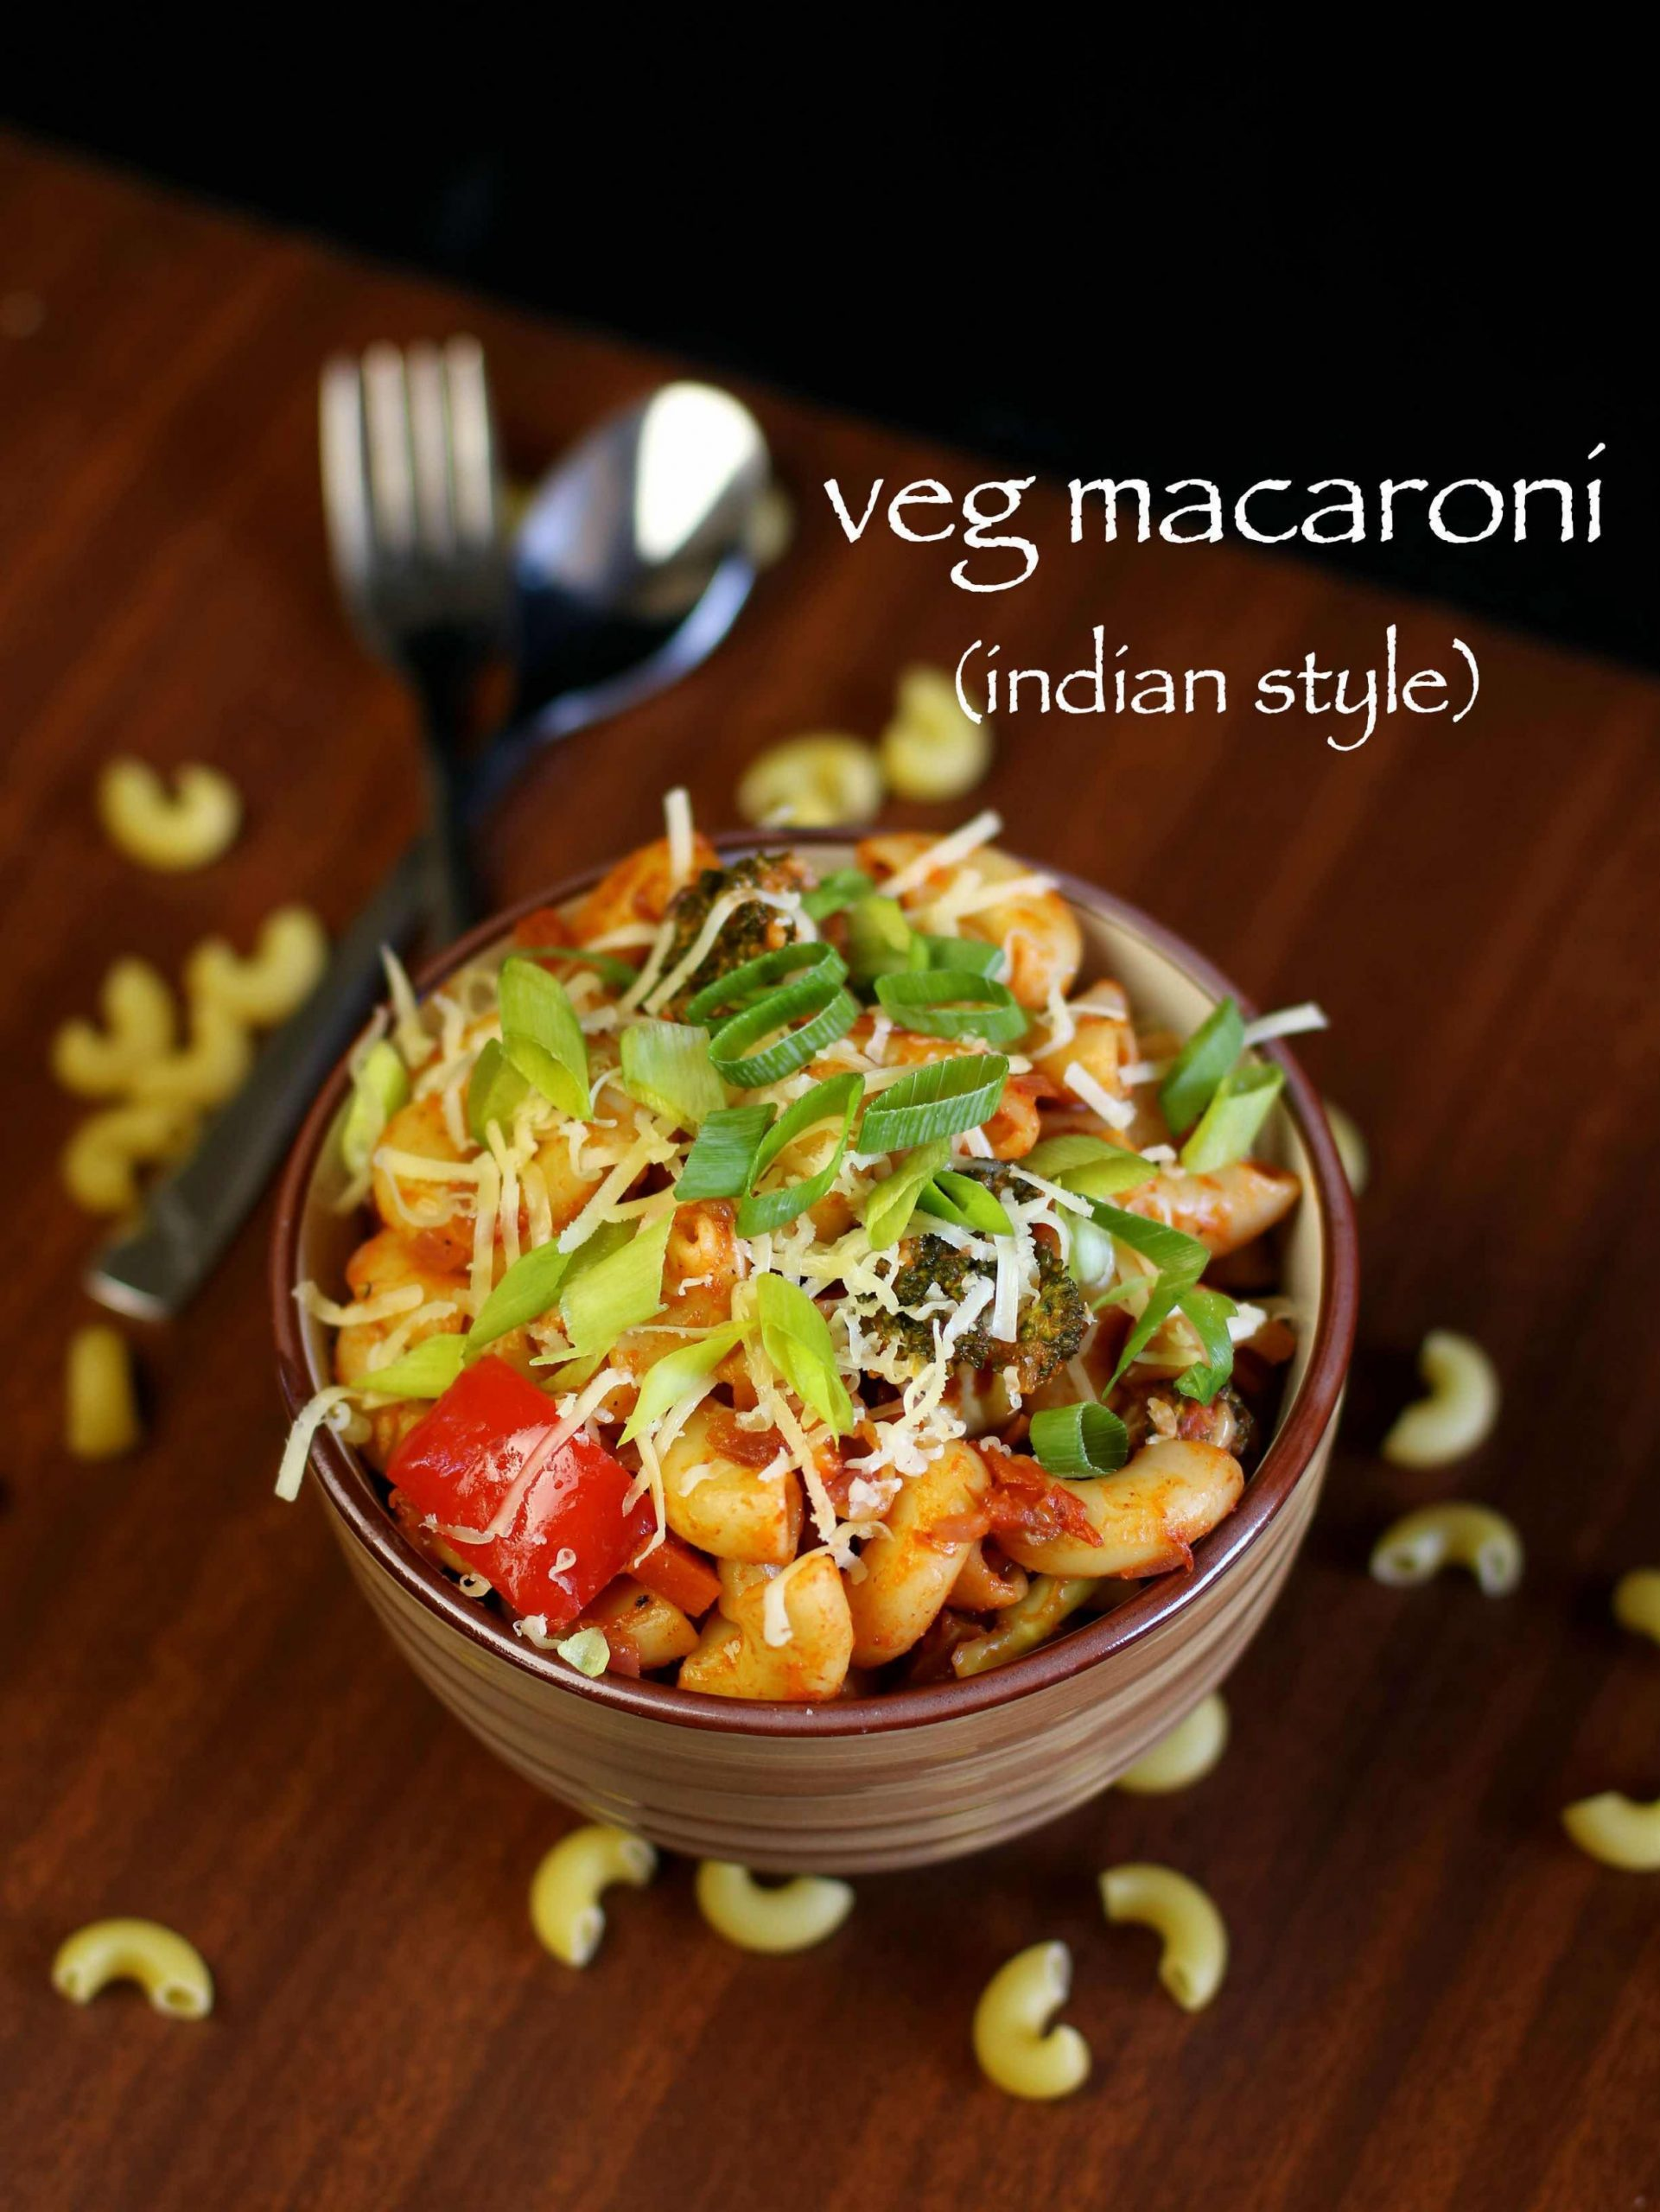 macaroni recipe | macaroni pasta recipe | indian recipe of macaroni